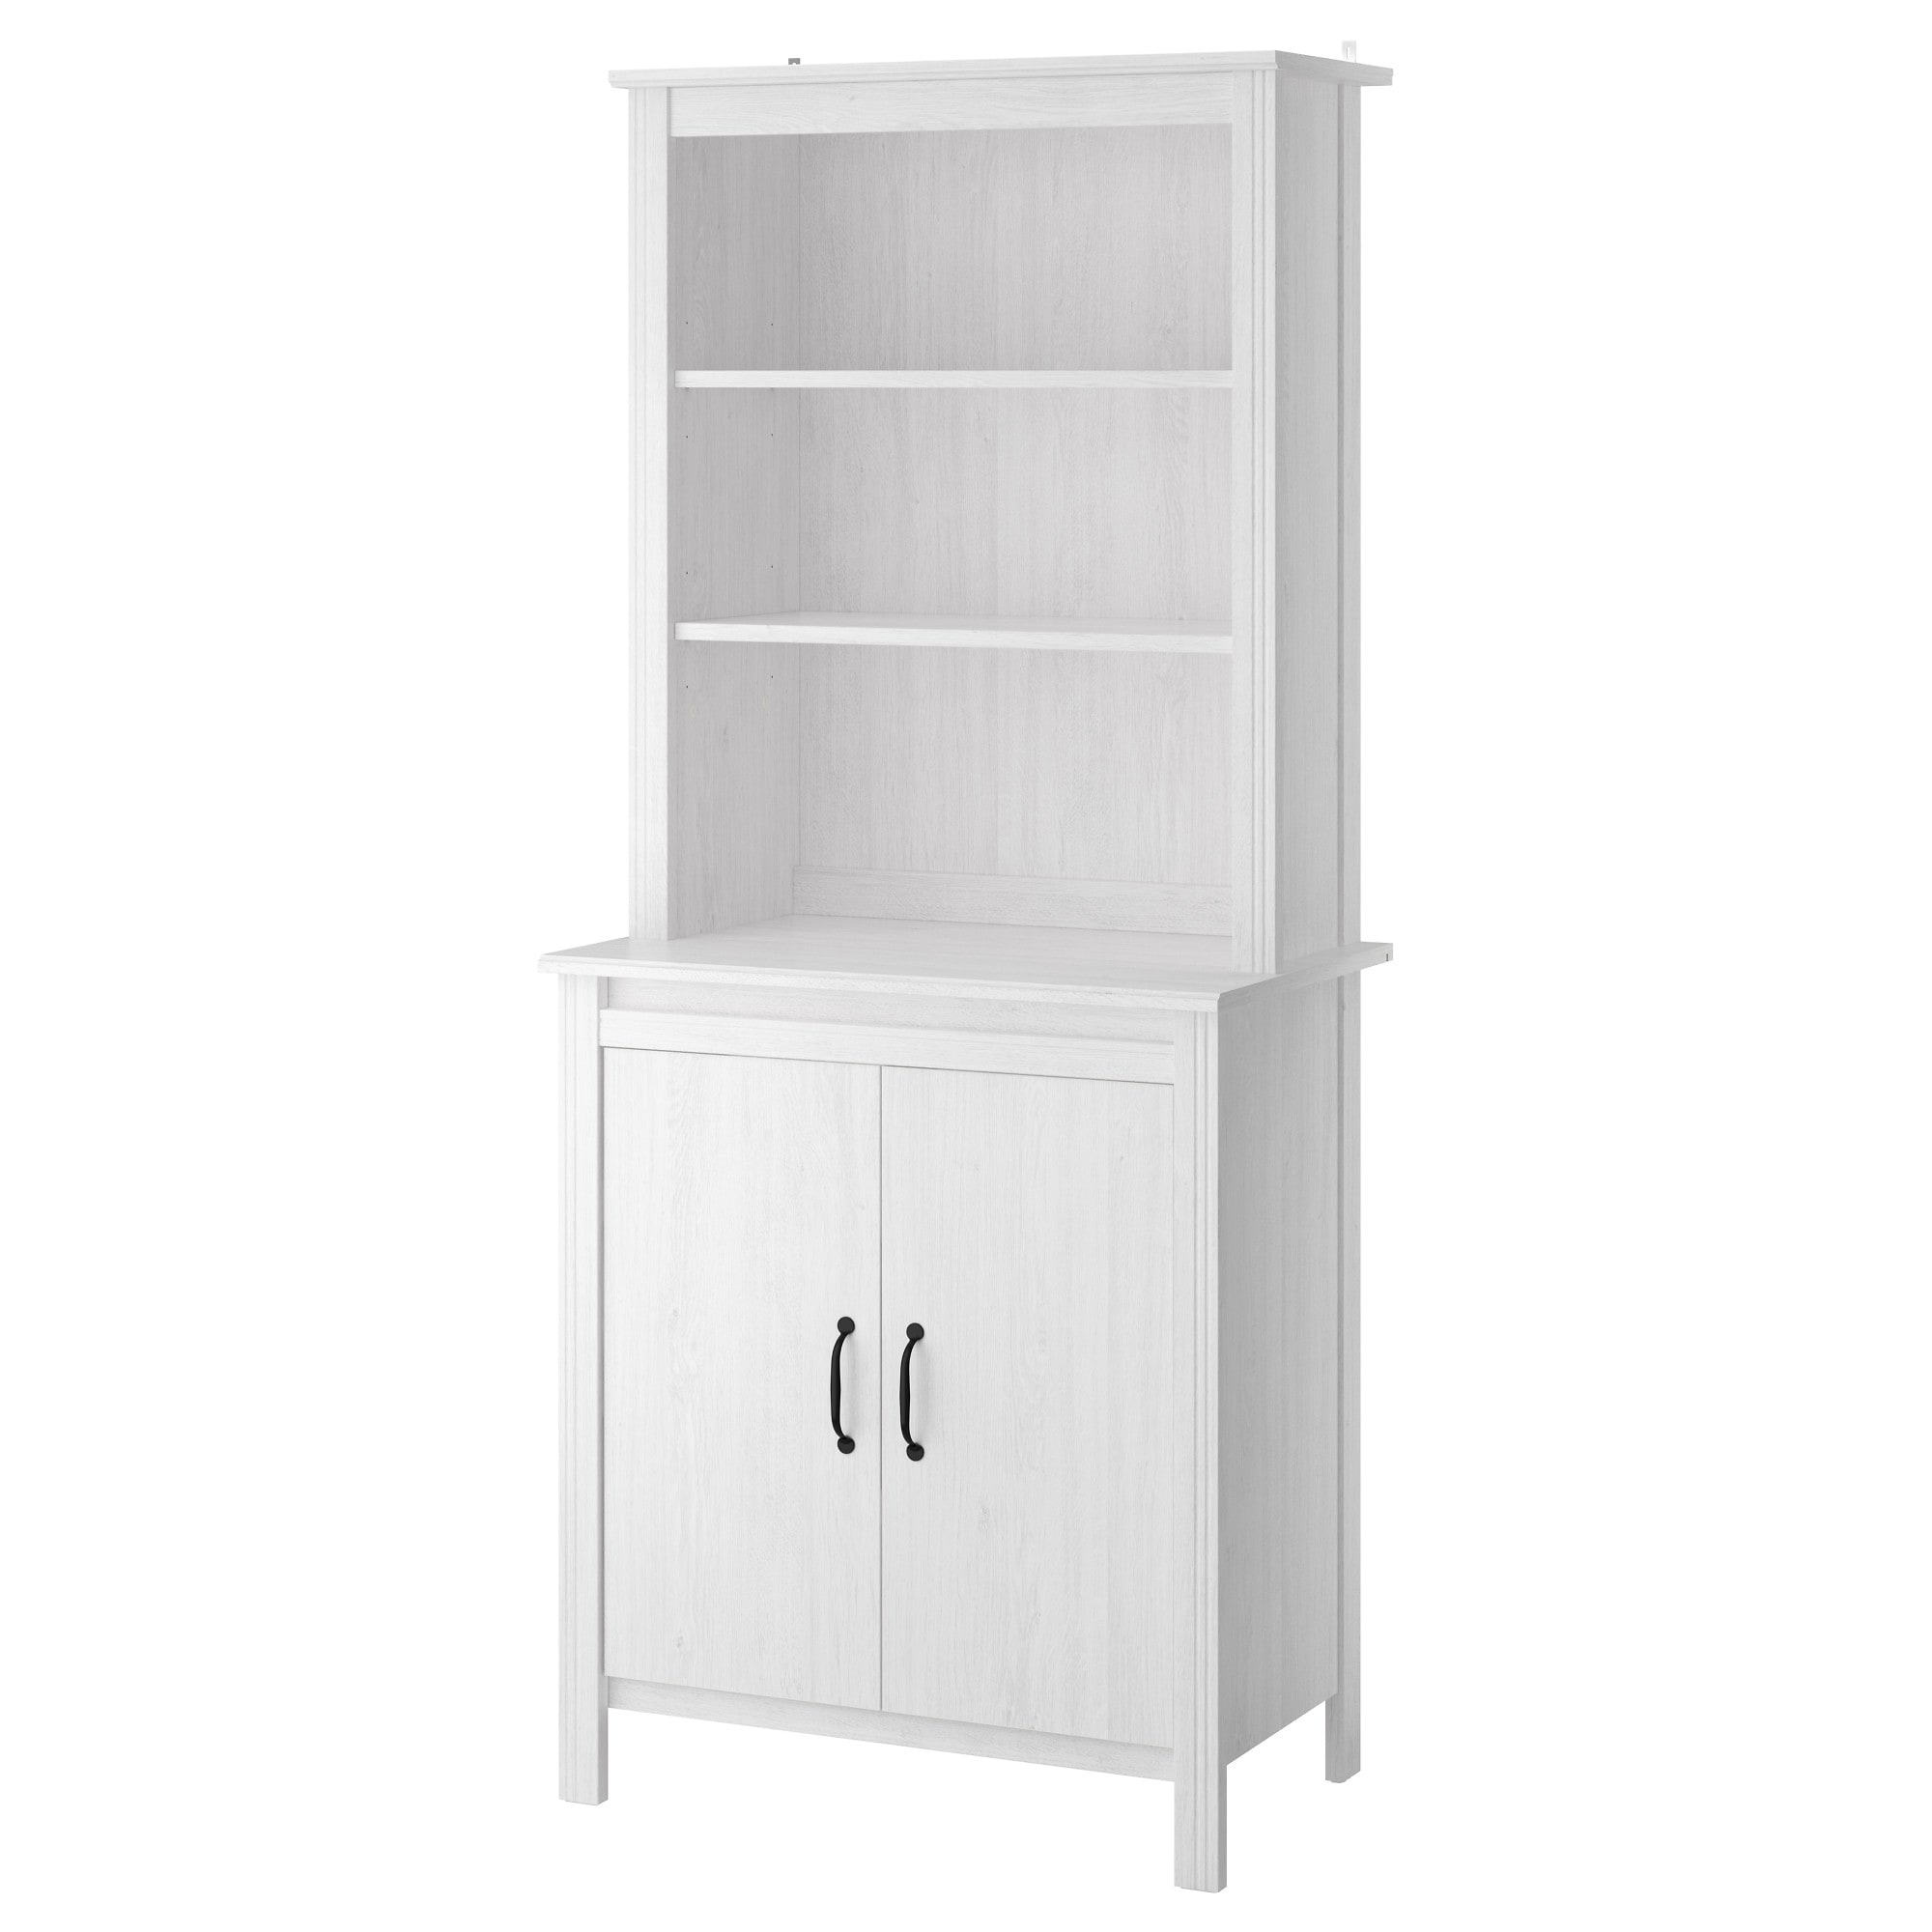 Furniture Home Furnishings Find Your Inspiration Ikea Brusali Glass Cabinet Doors Storage Cabinets